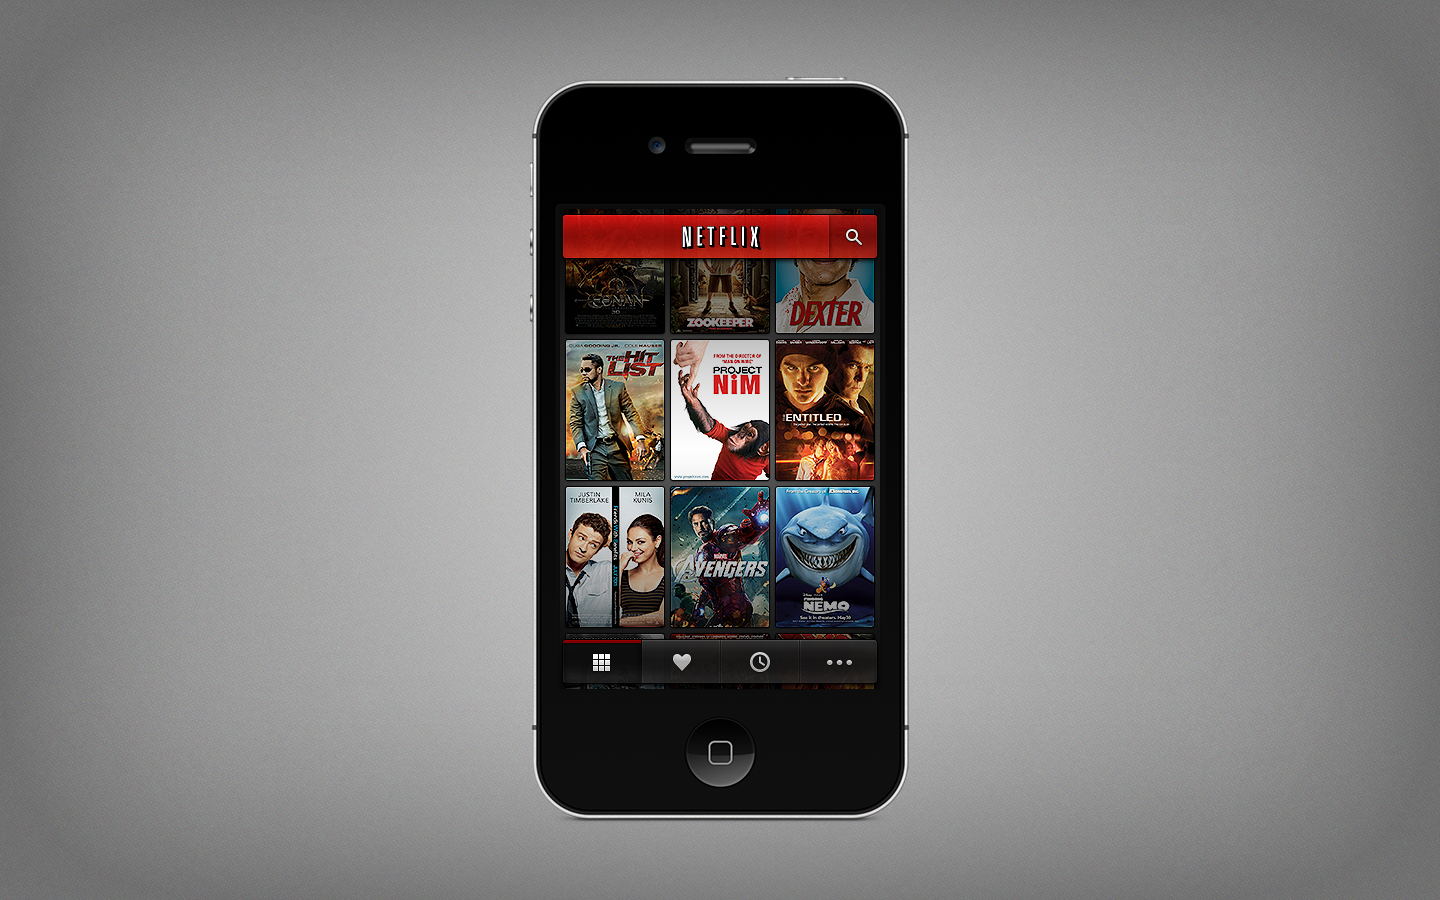 Netflix_iphone_ui_full